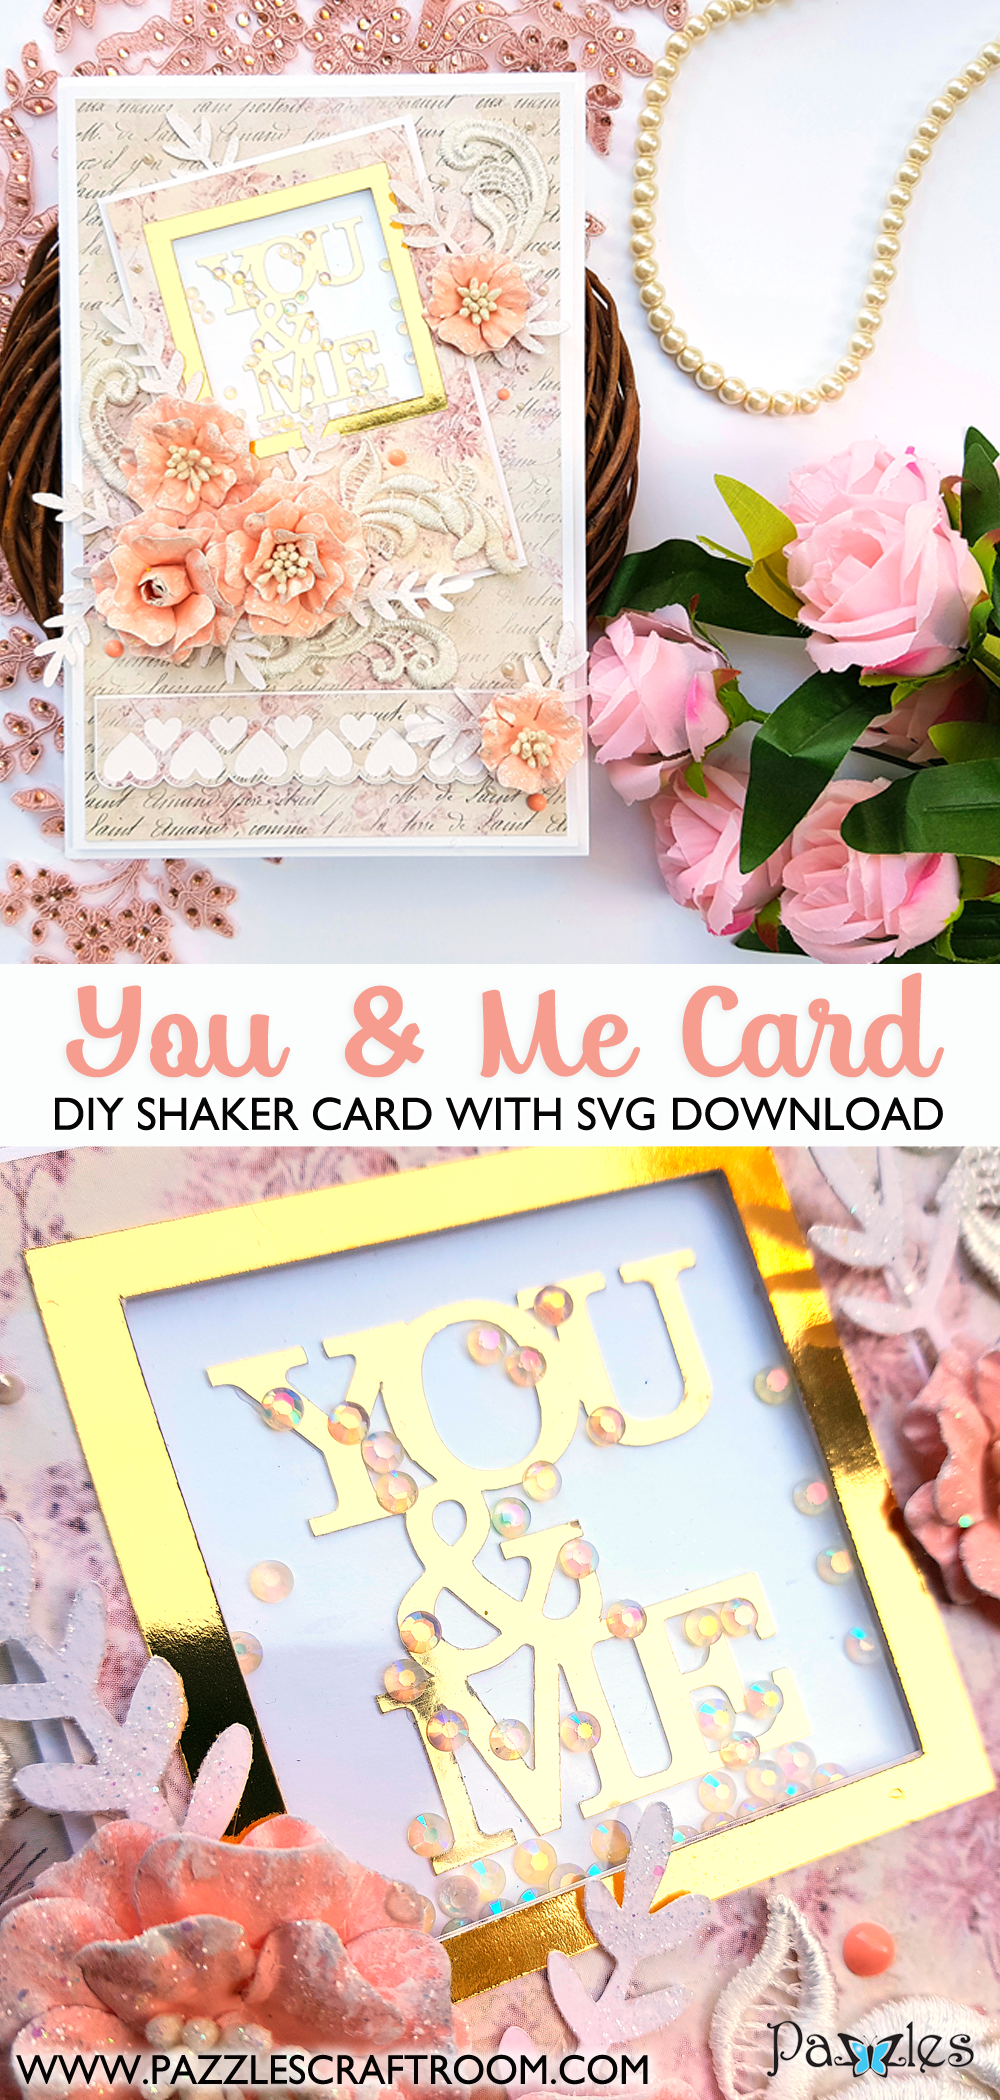 Pazzles DIY You & Me Card with instant SVG download. Instant SVG download compatible with all major electronic cutters including Pazzles Inspiration, Cricut, and Silhouette Cameo. Design by Nida Tanweer.